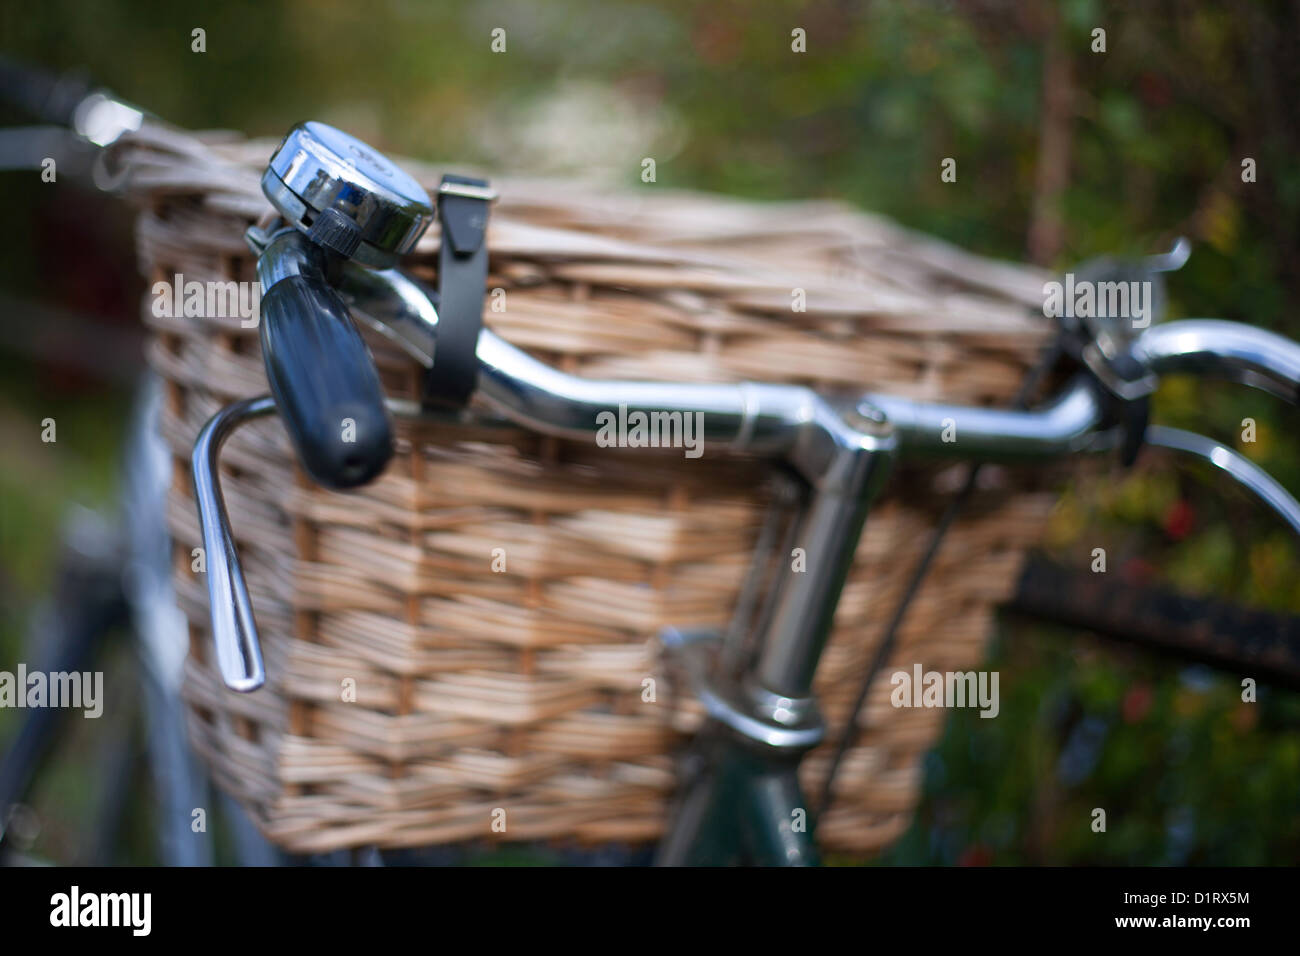 Bicycle wicker basket handlebars and bell - Stock Image